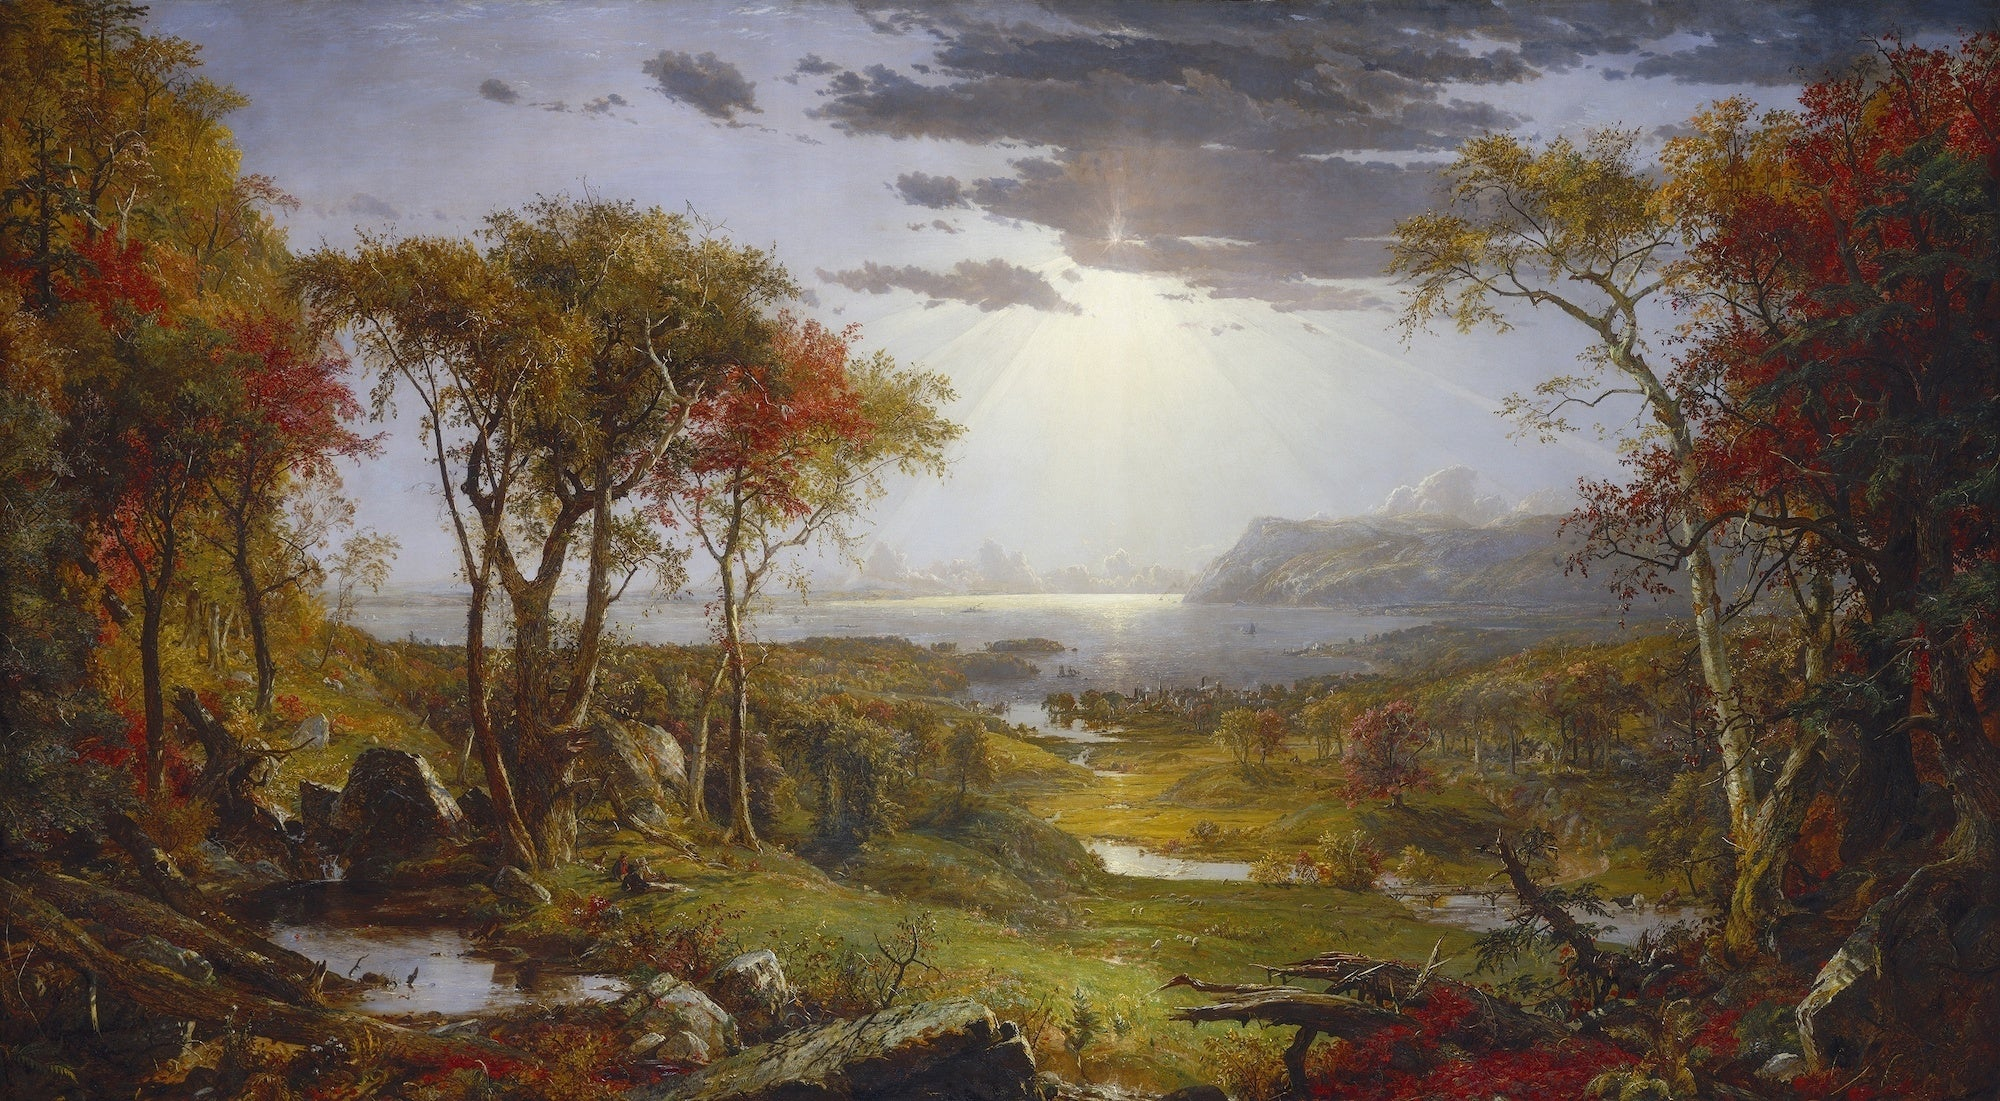 Autumn-On the Hudson River, Jasper Francis Cropsey, 1860, American painting, oil on canvas. The view is toward the southeast and includes Storm King. Cropsey painted the large canvas in his London studio